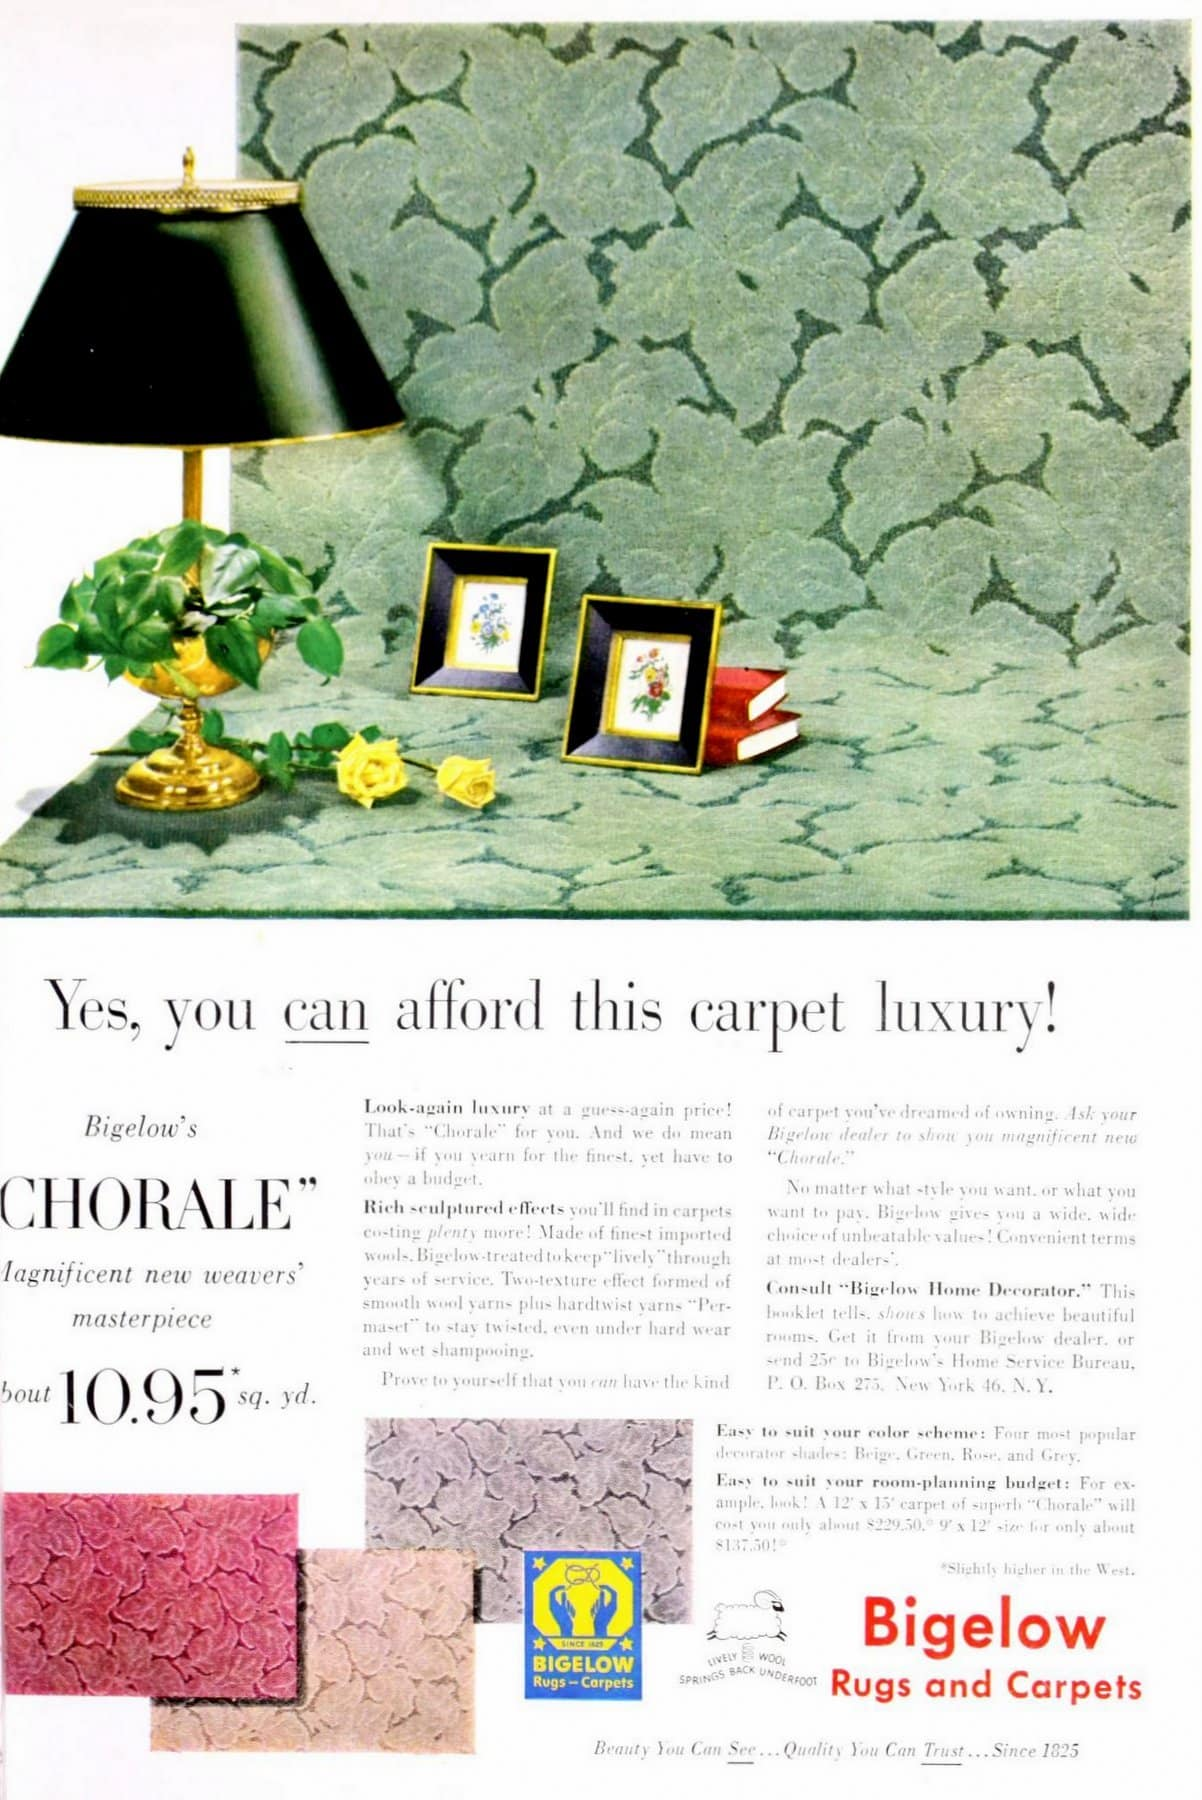 Rich scultured effects on green Bigelow carpet from the 1950s